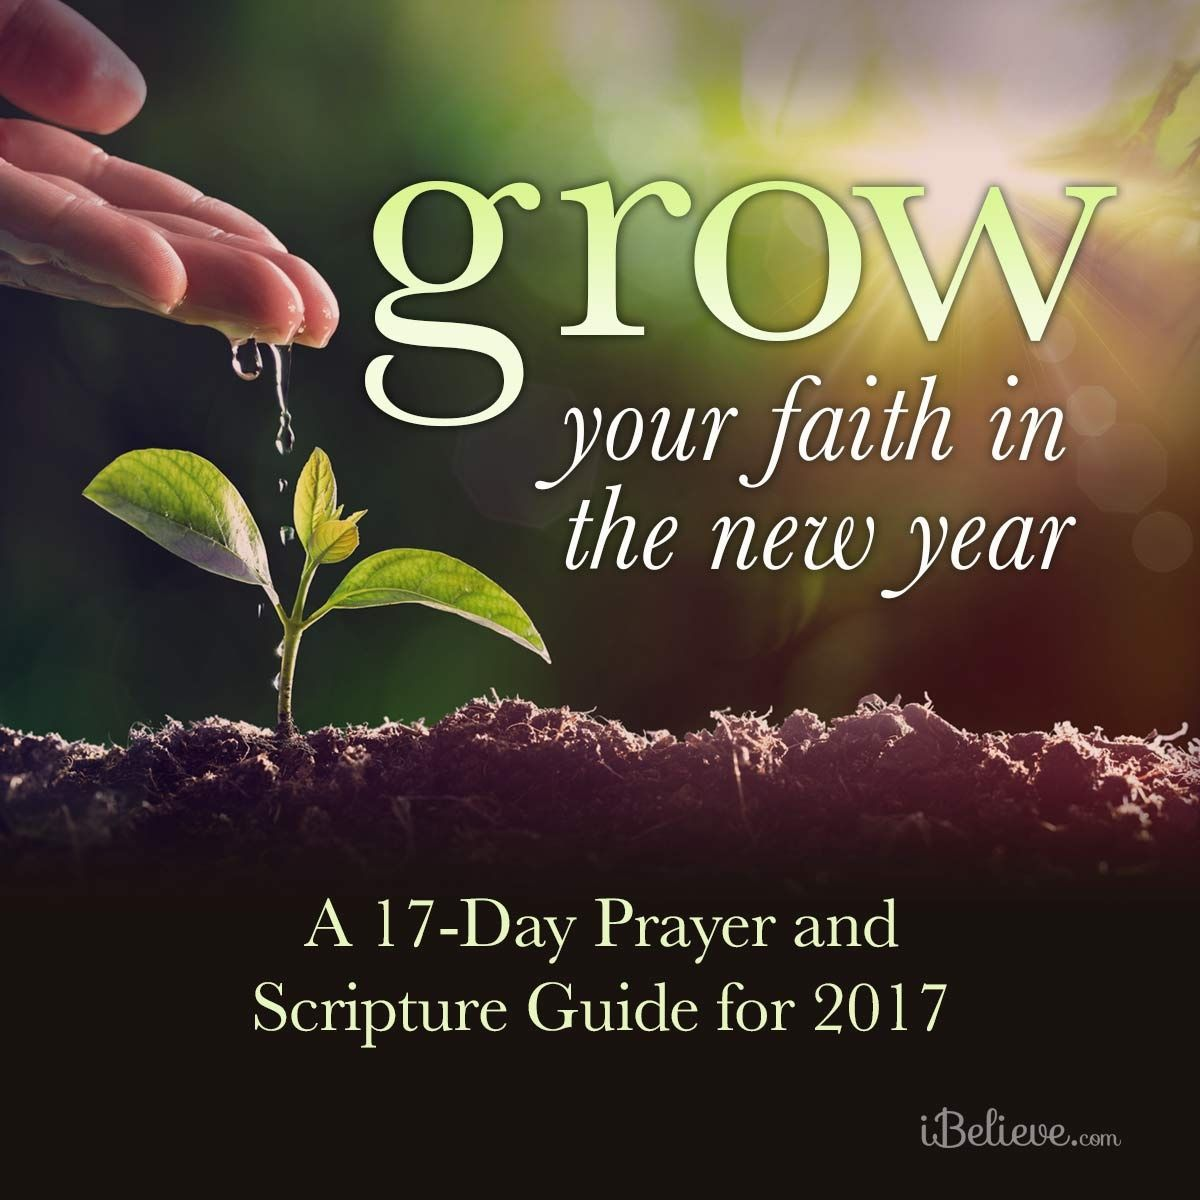 New Year Images With Bible Quotes: Grow Your Faith In The New Year: A 17-Day Prayer Guide And